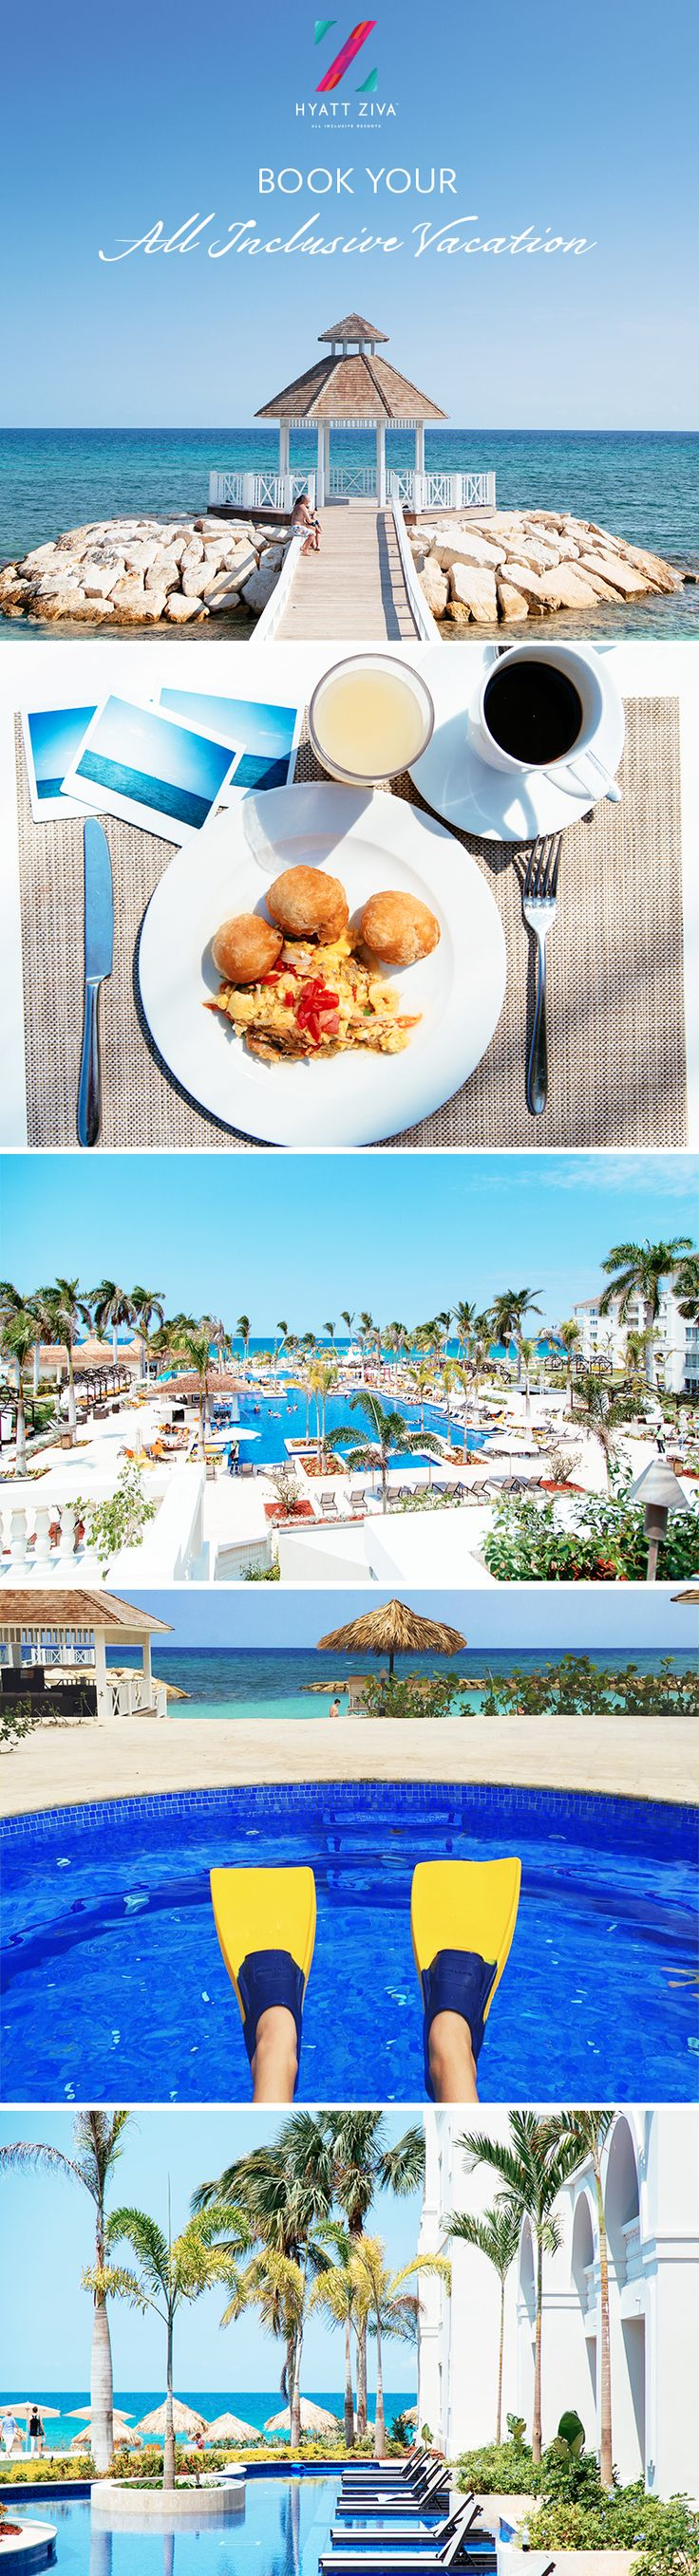 Grab your family and plan your next all inclusive vacation to the tropical paradise of Montego Bay, Jamaica. Indulge in unlimited Jamaican inspired eats, gorgeous beach views, crystal clear waters of the Caribbean and unforgettable family fun with #HyattAllIn. Plan your escape today! | Hyatt Ziva Rose Hall